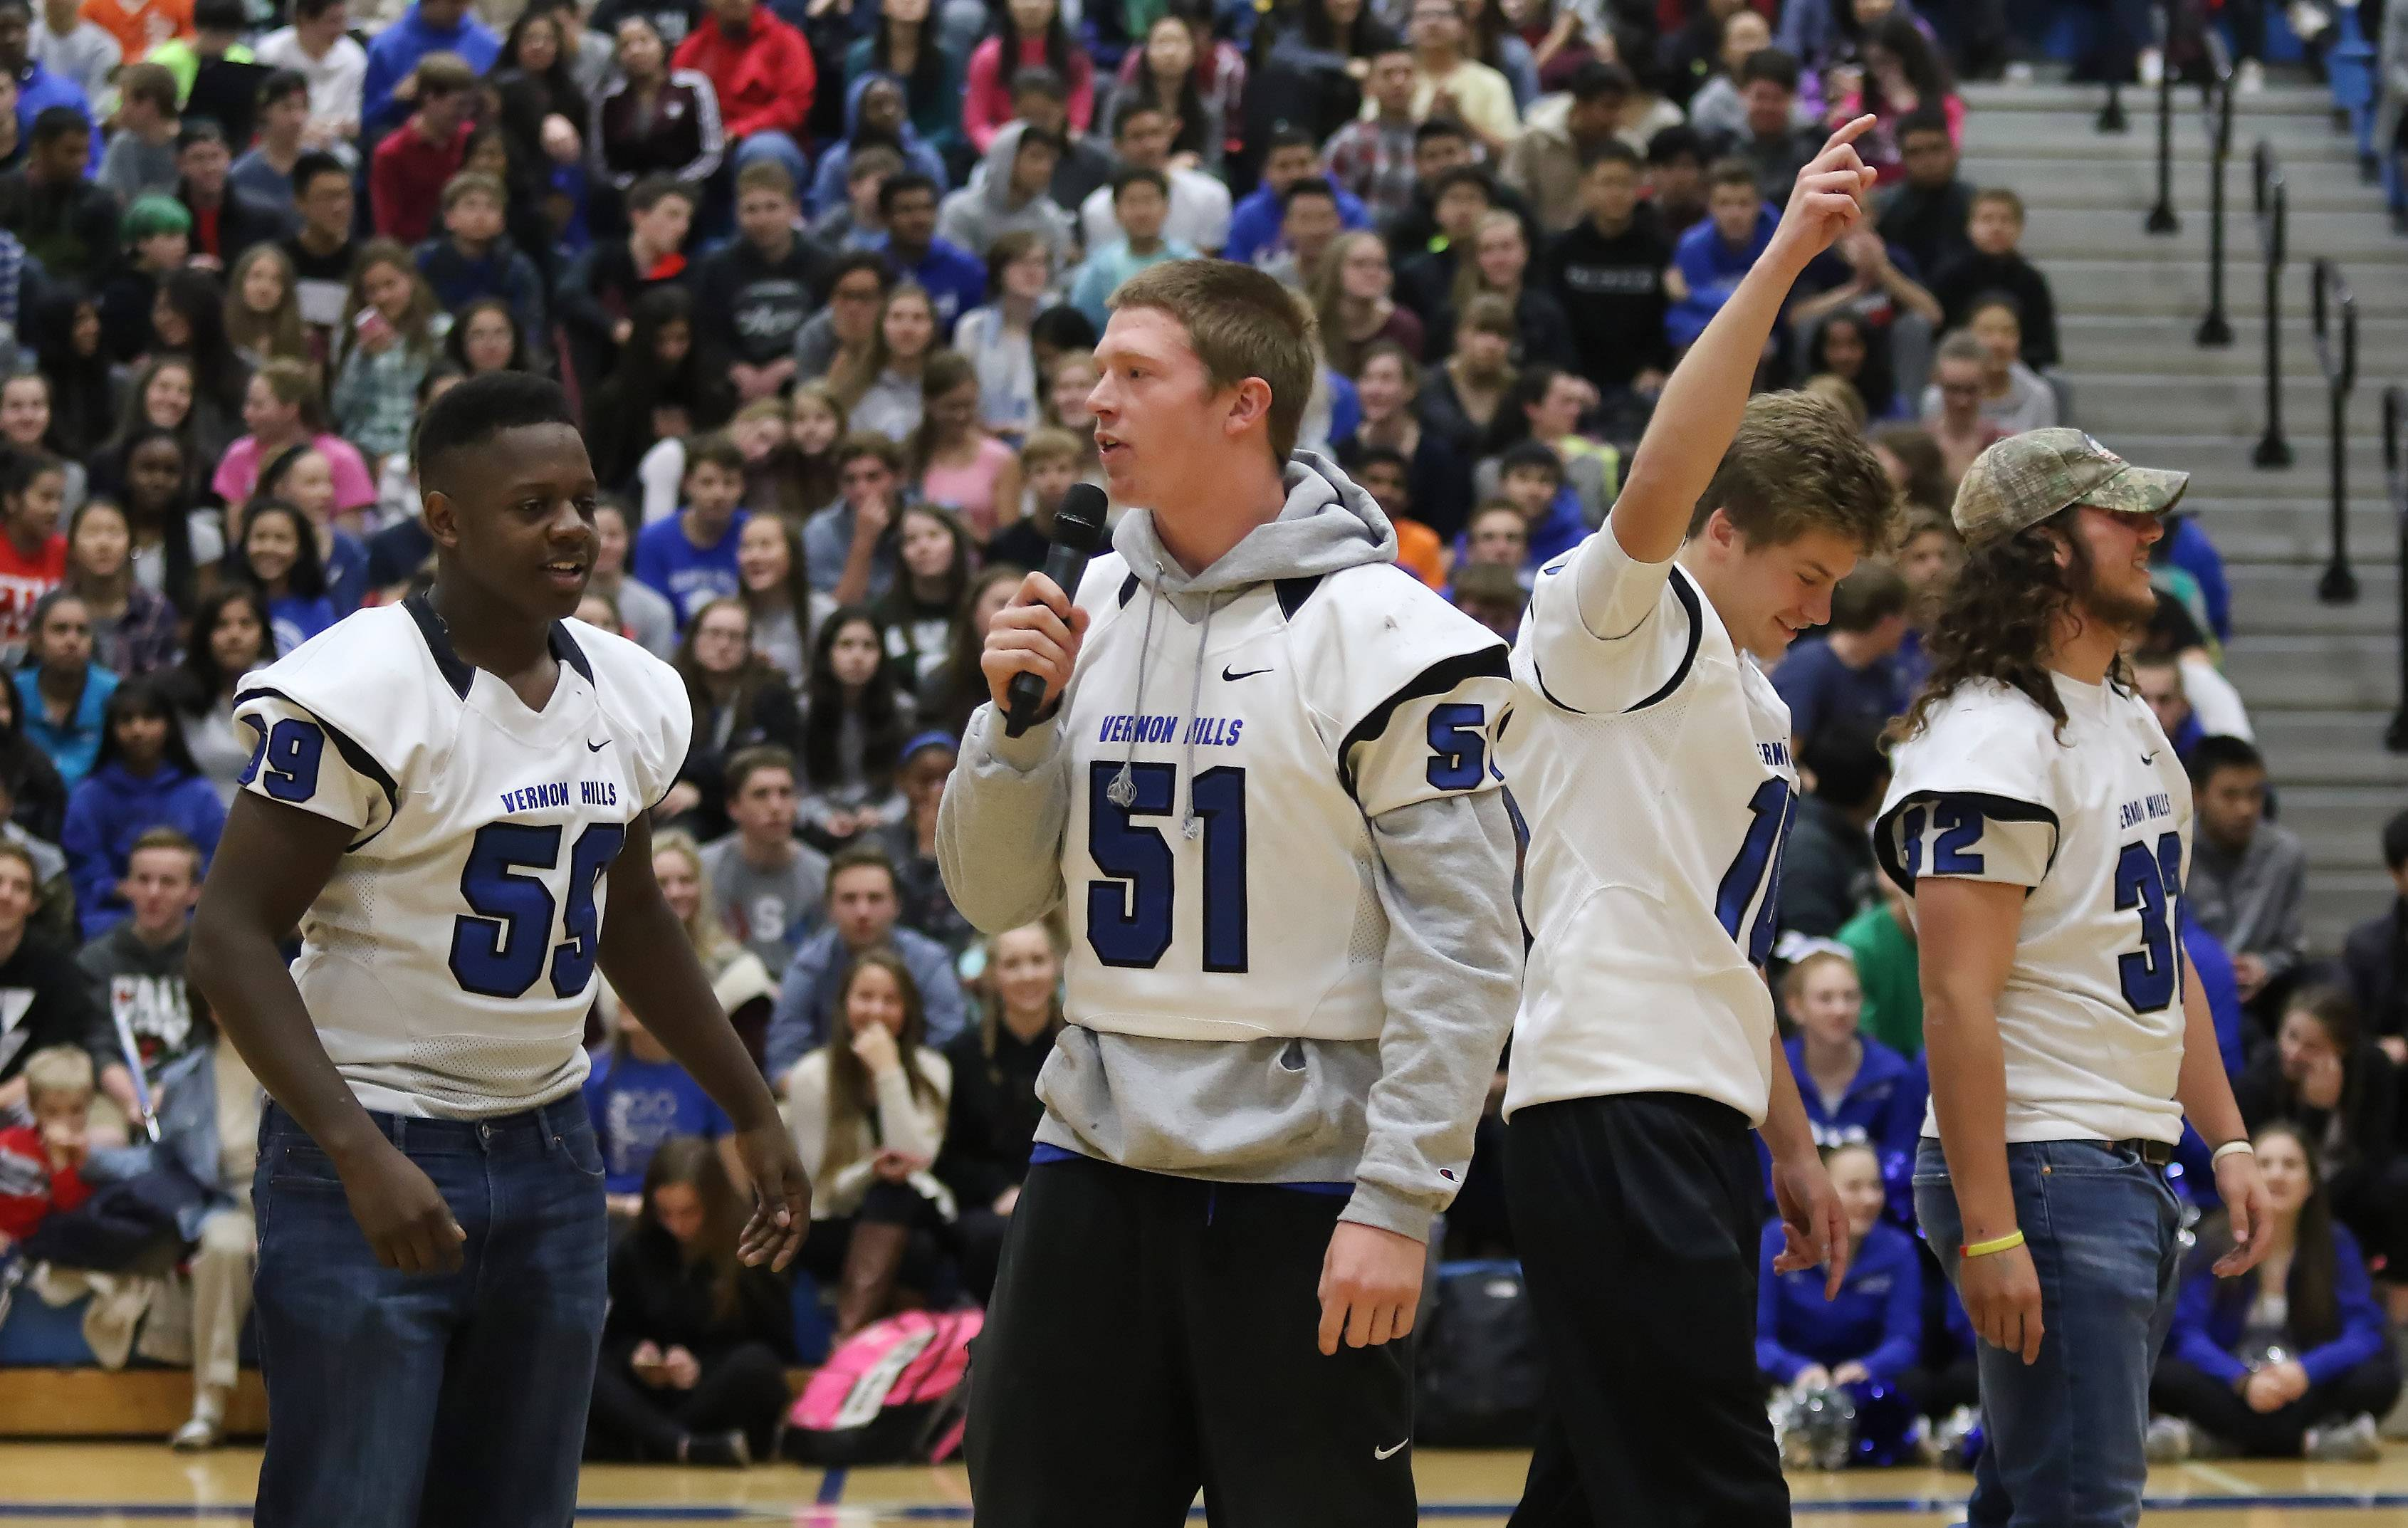 Vernon Hills High School football captains Mac Vincent, left, Andrew Smith, Kyle Hull and Jeffrey Rosenstock try to pump up the crowd during a pep rally Wednesday. The team will play for the Class 5A state football championship Saturday.